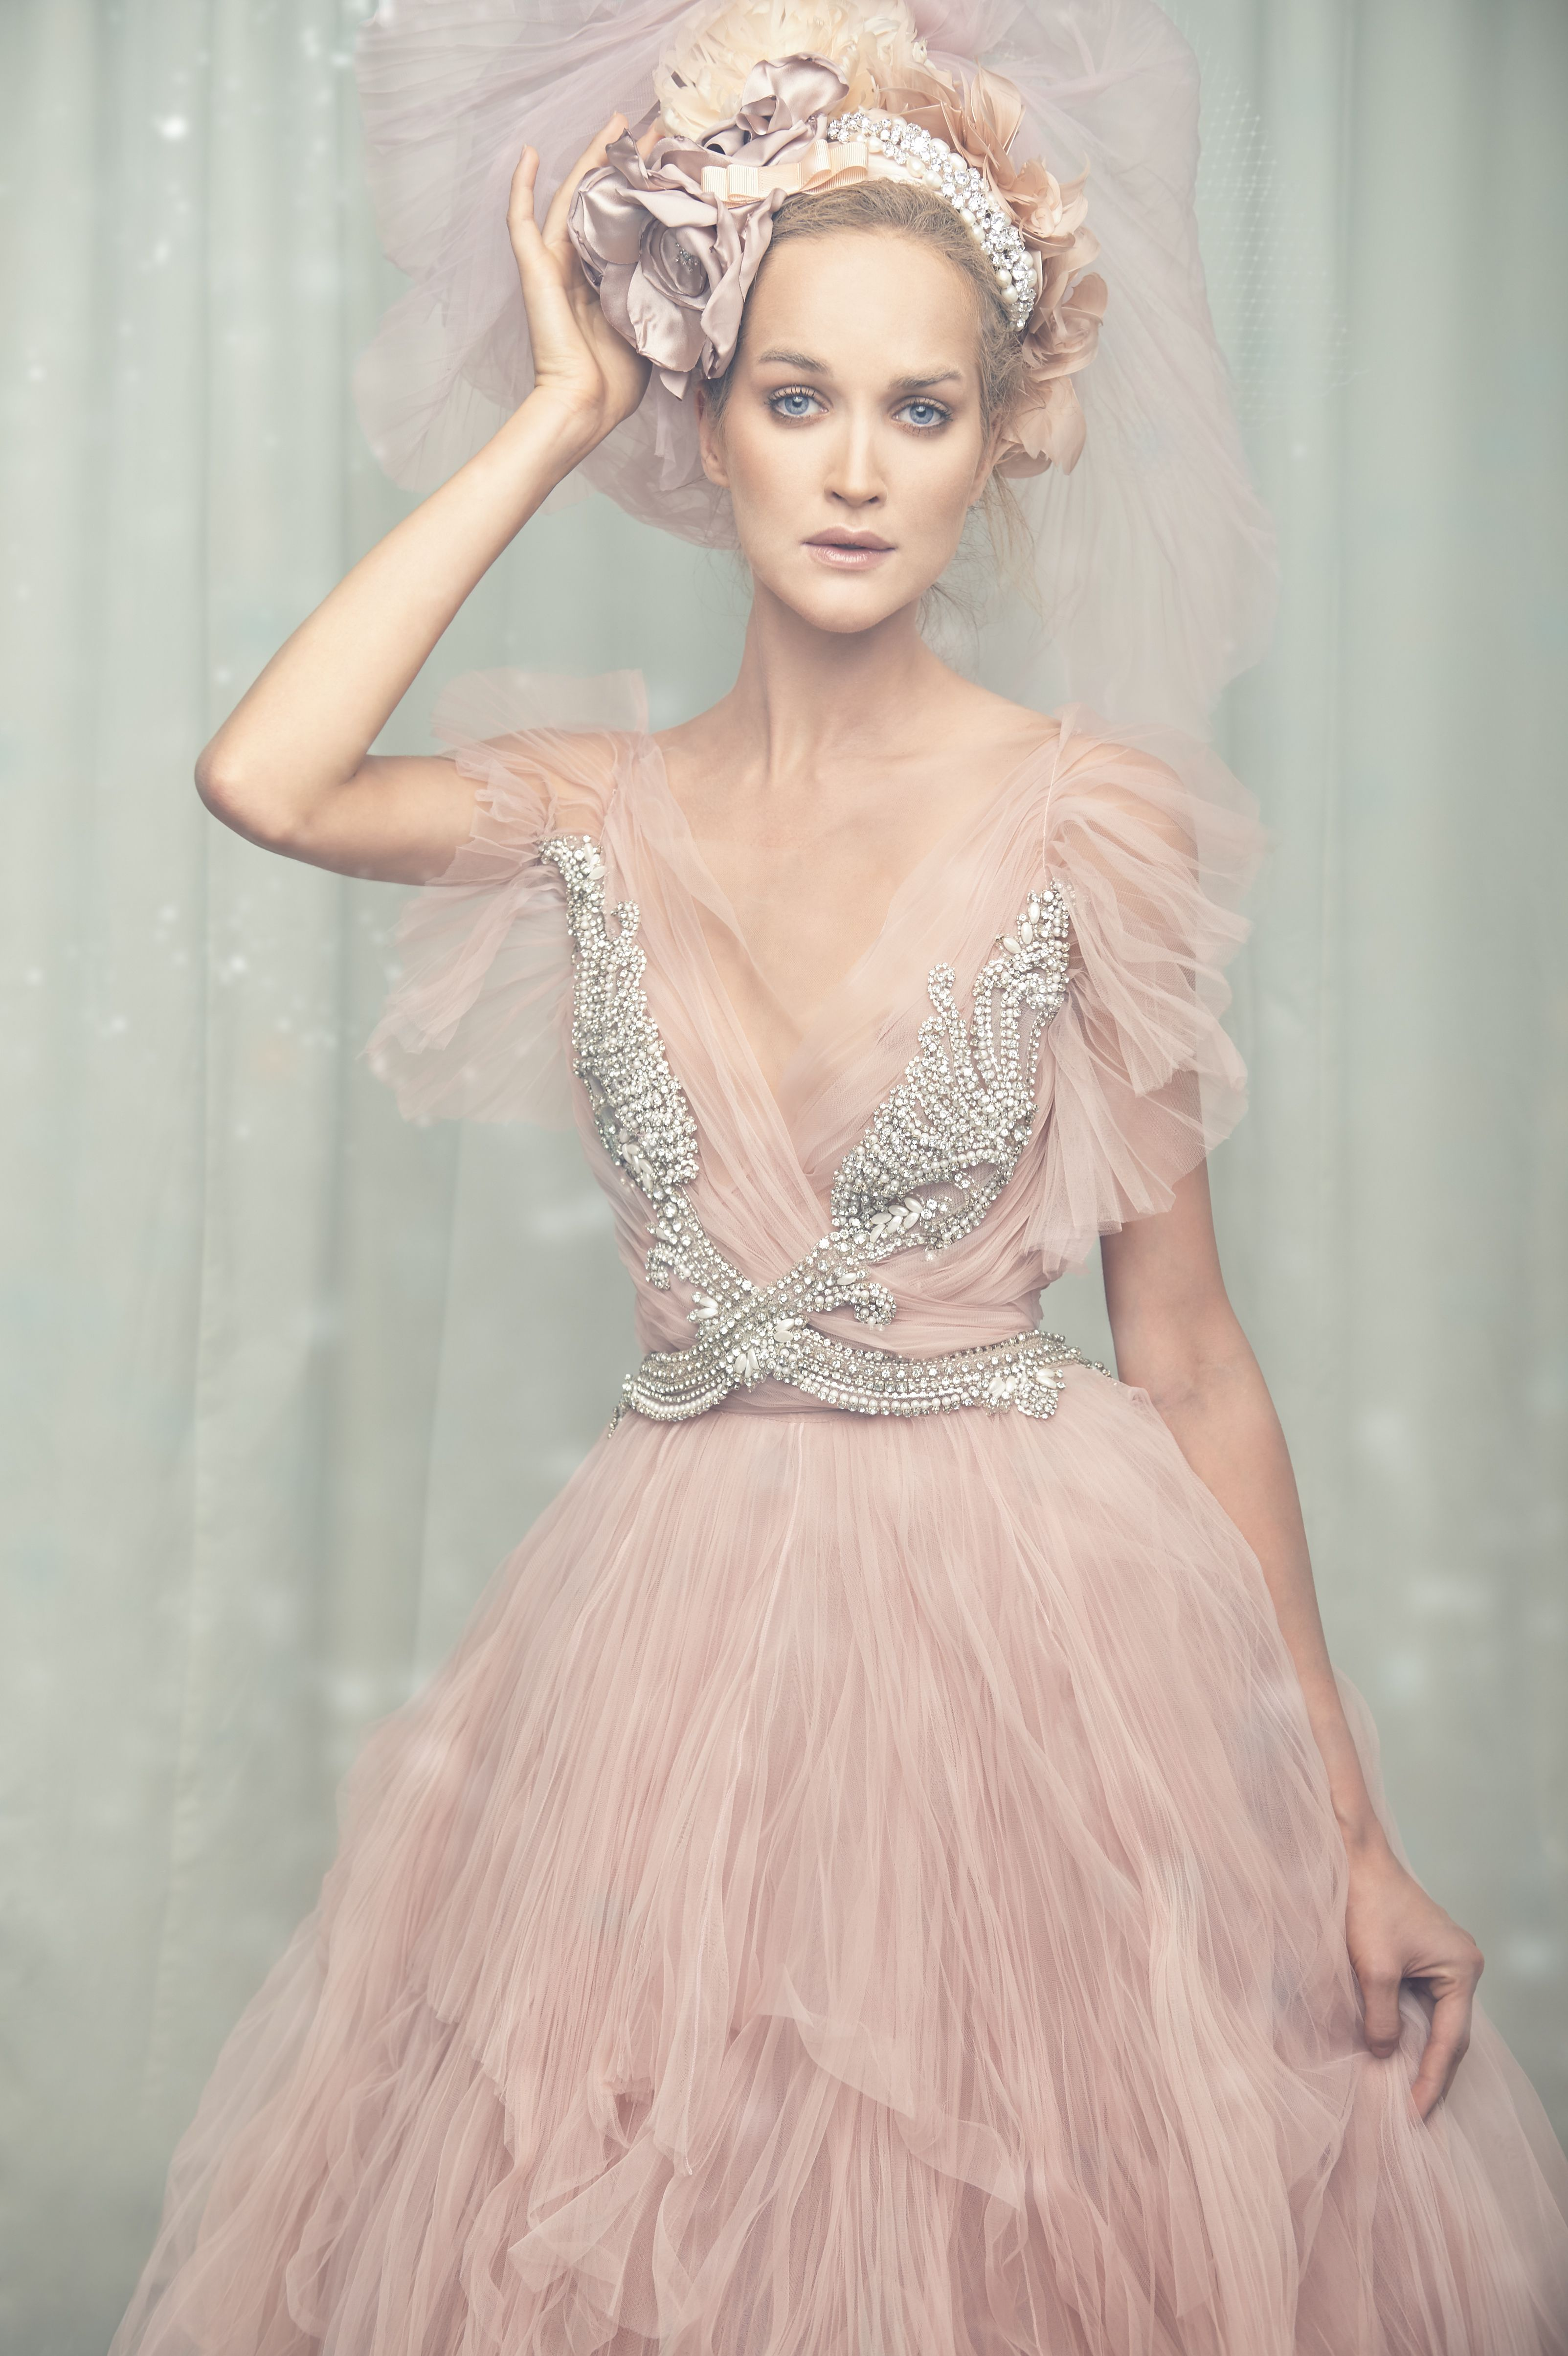 Marco & Maria 2015 Bridal and Evening Collection Photographer ...